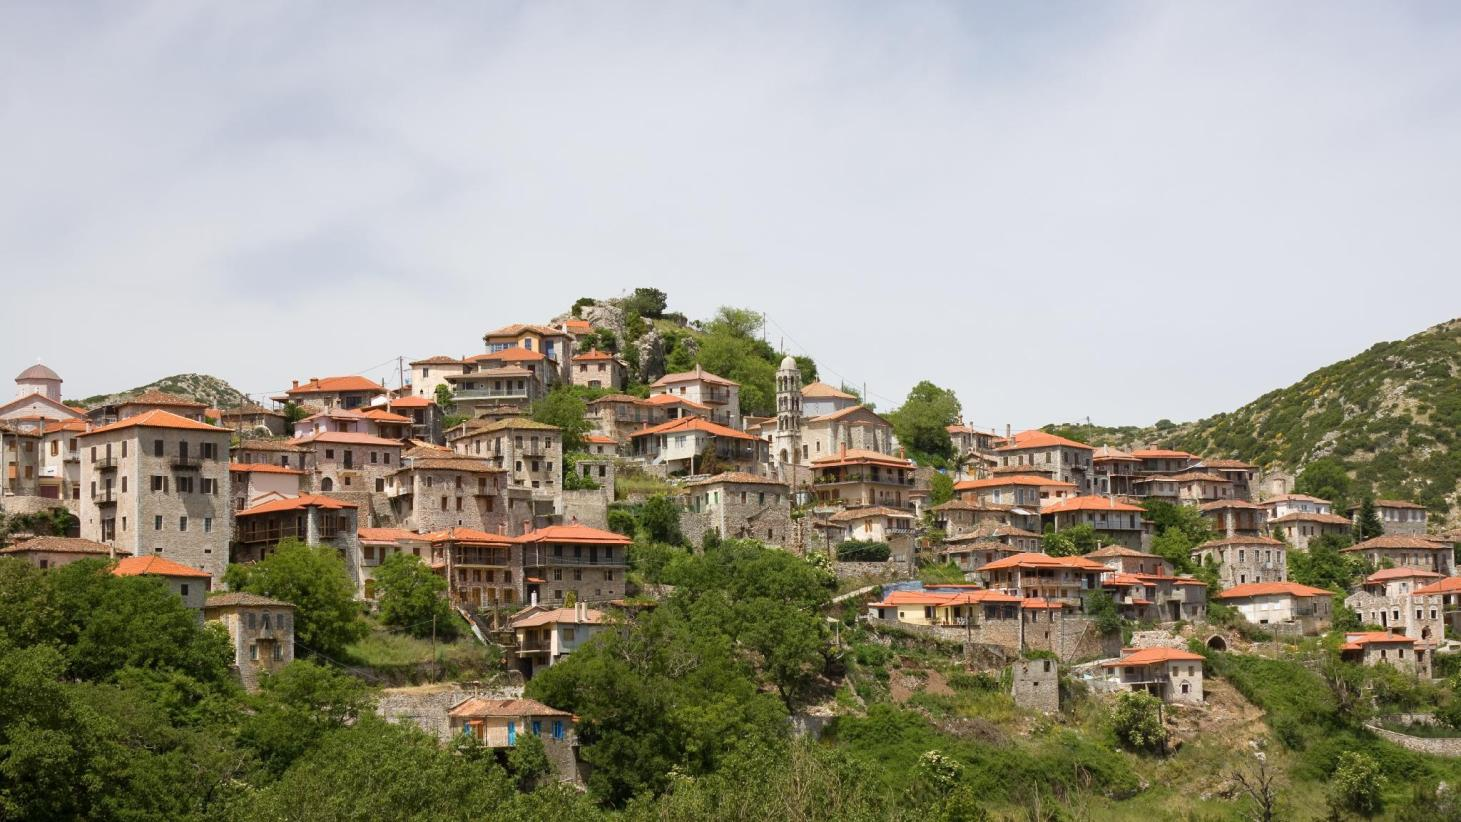 30 Best Dimitsana Hotels - Free Cancellation, 2021 Price Lists & Reviews of  the Best Hotels in Dimitsana, Greece